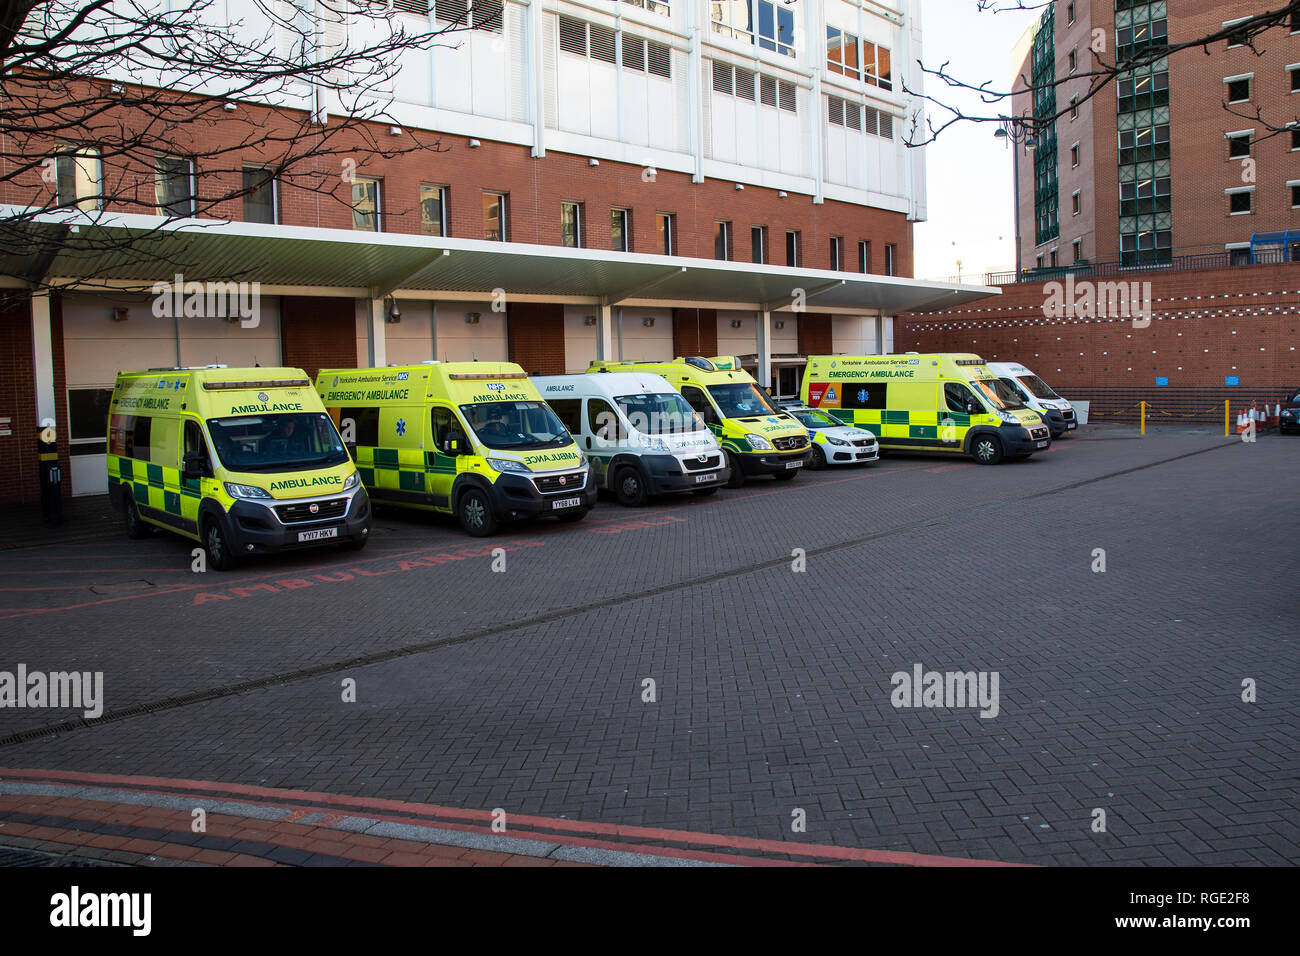 A fleet of ambulances outside the accident and emergency wing of Leeds General Infirmary, Leeds, Yorkshire U.K. - Stock Image